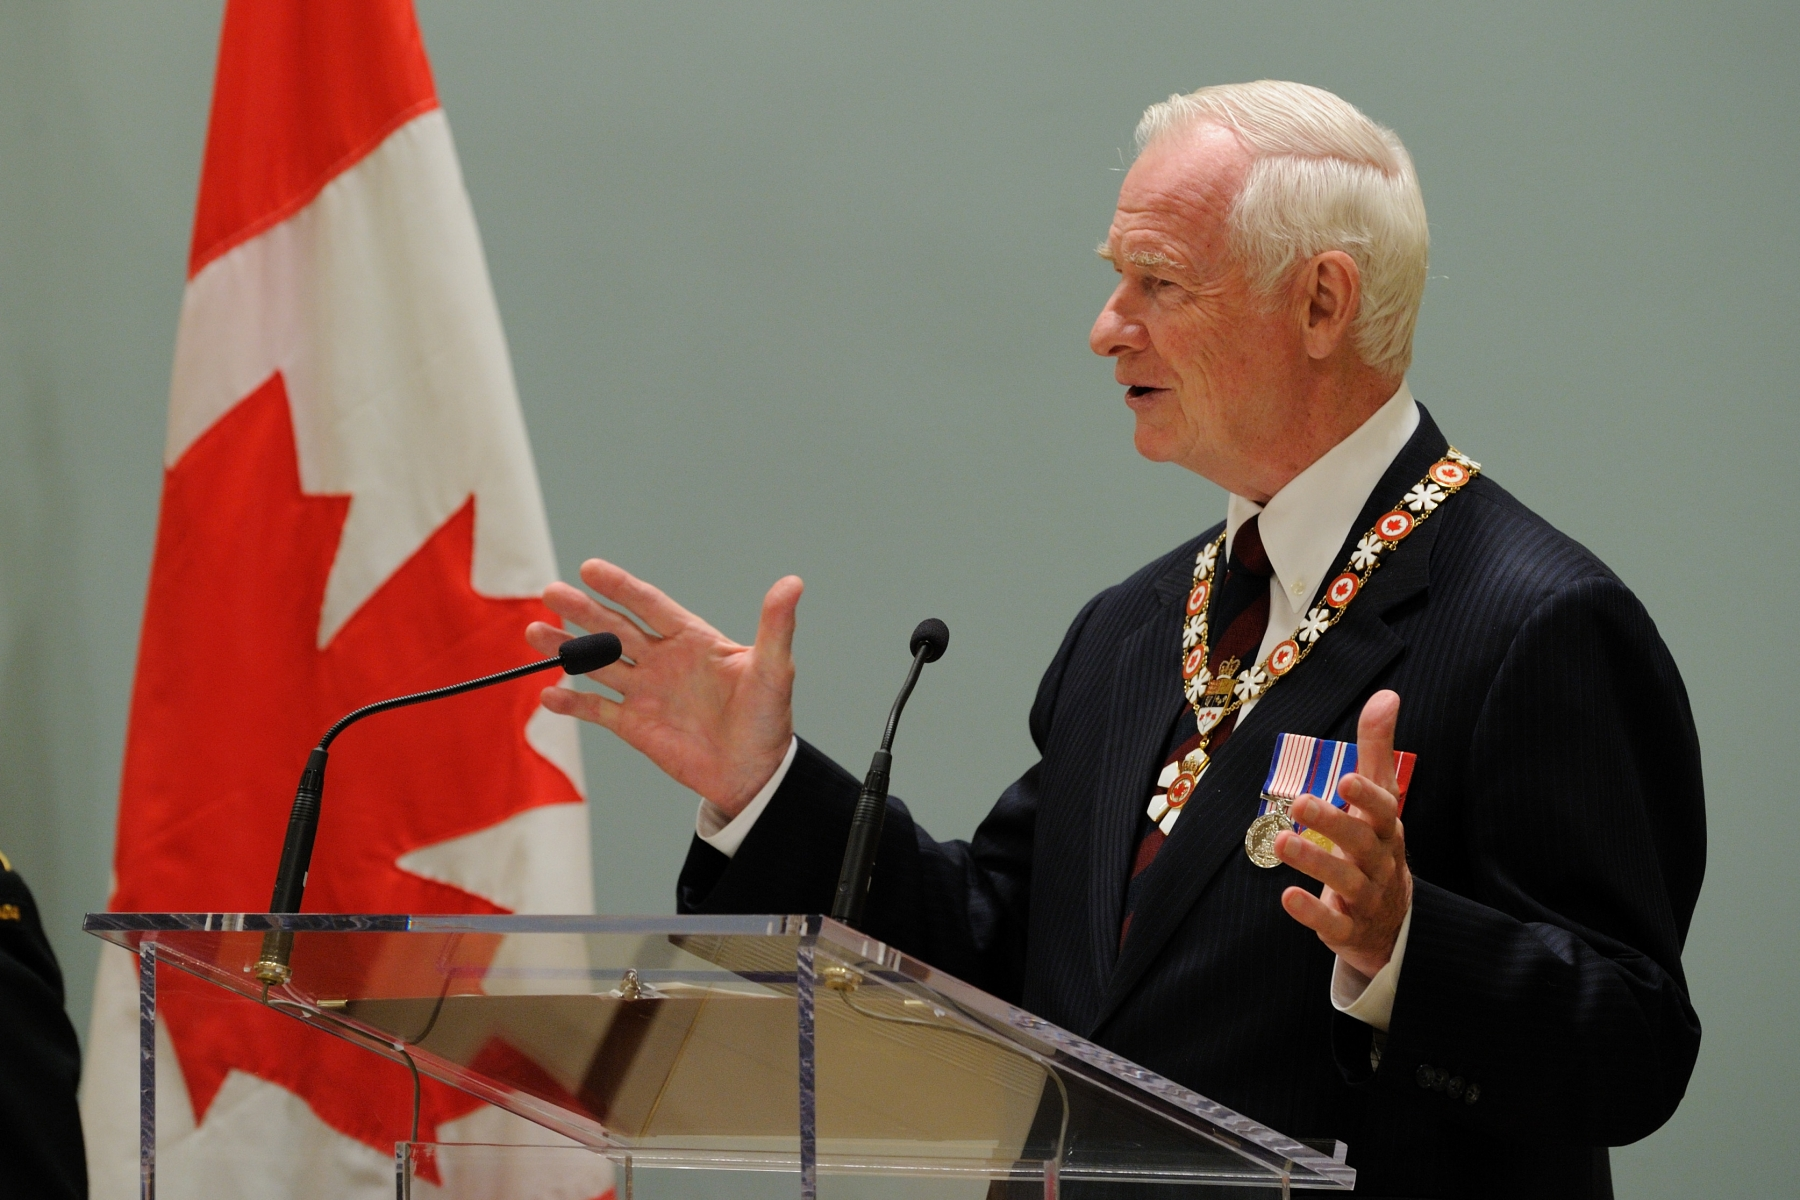 """You are leaders, innovators and givers. You have defined Canadian art, science, politics, sports, business and so much more. And because of this, because you have proven yourselves on the national and international stage, you are being invested into the Order of Canada, and joining others who have helped us to define what it means to be Canadian"", said the Governor General while presiding over the Order of Canada investiture ceremony at Rideau Hall."